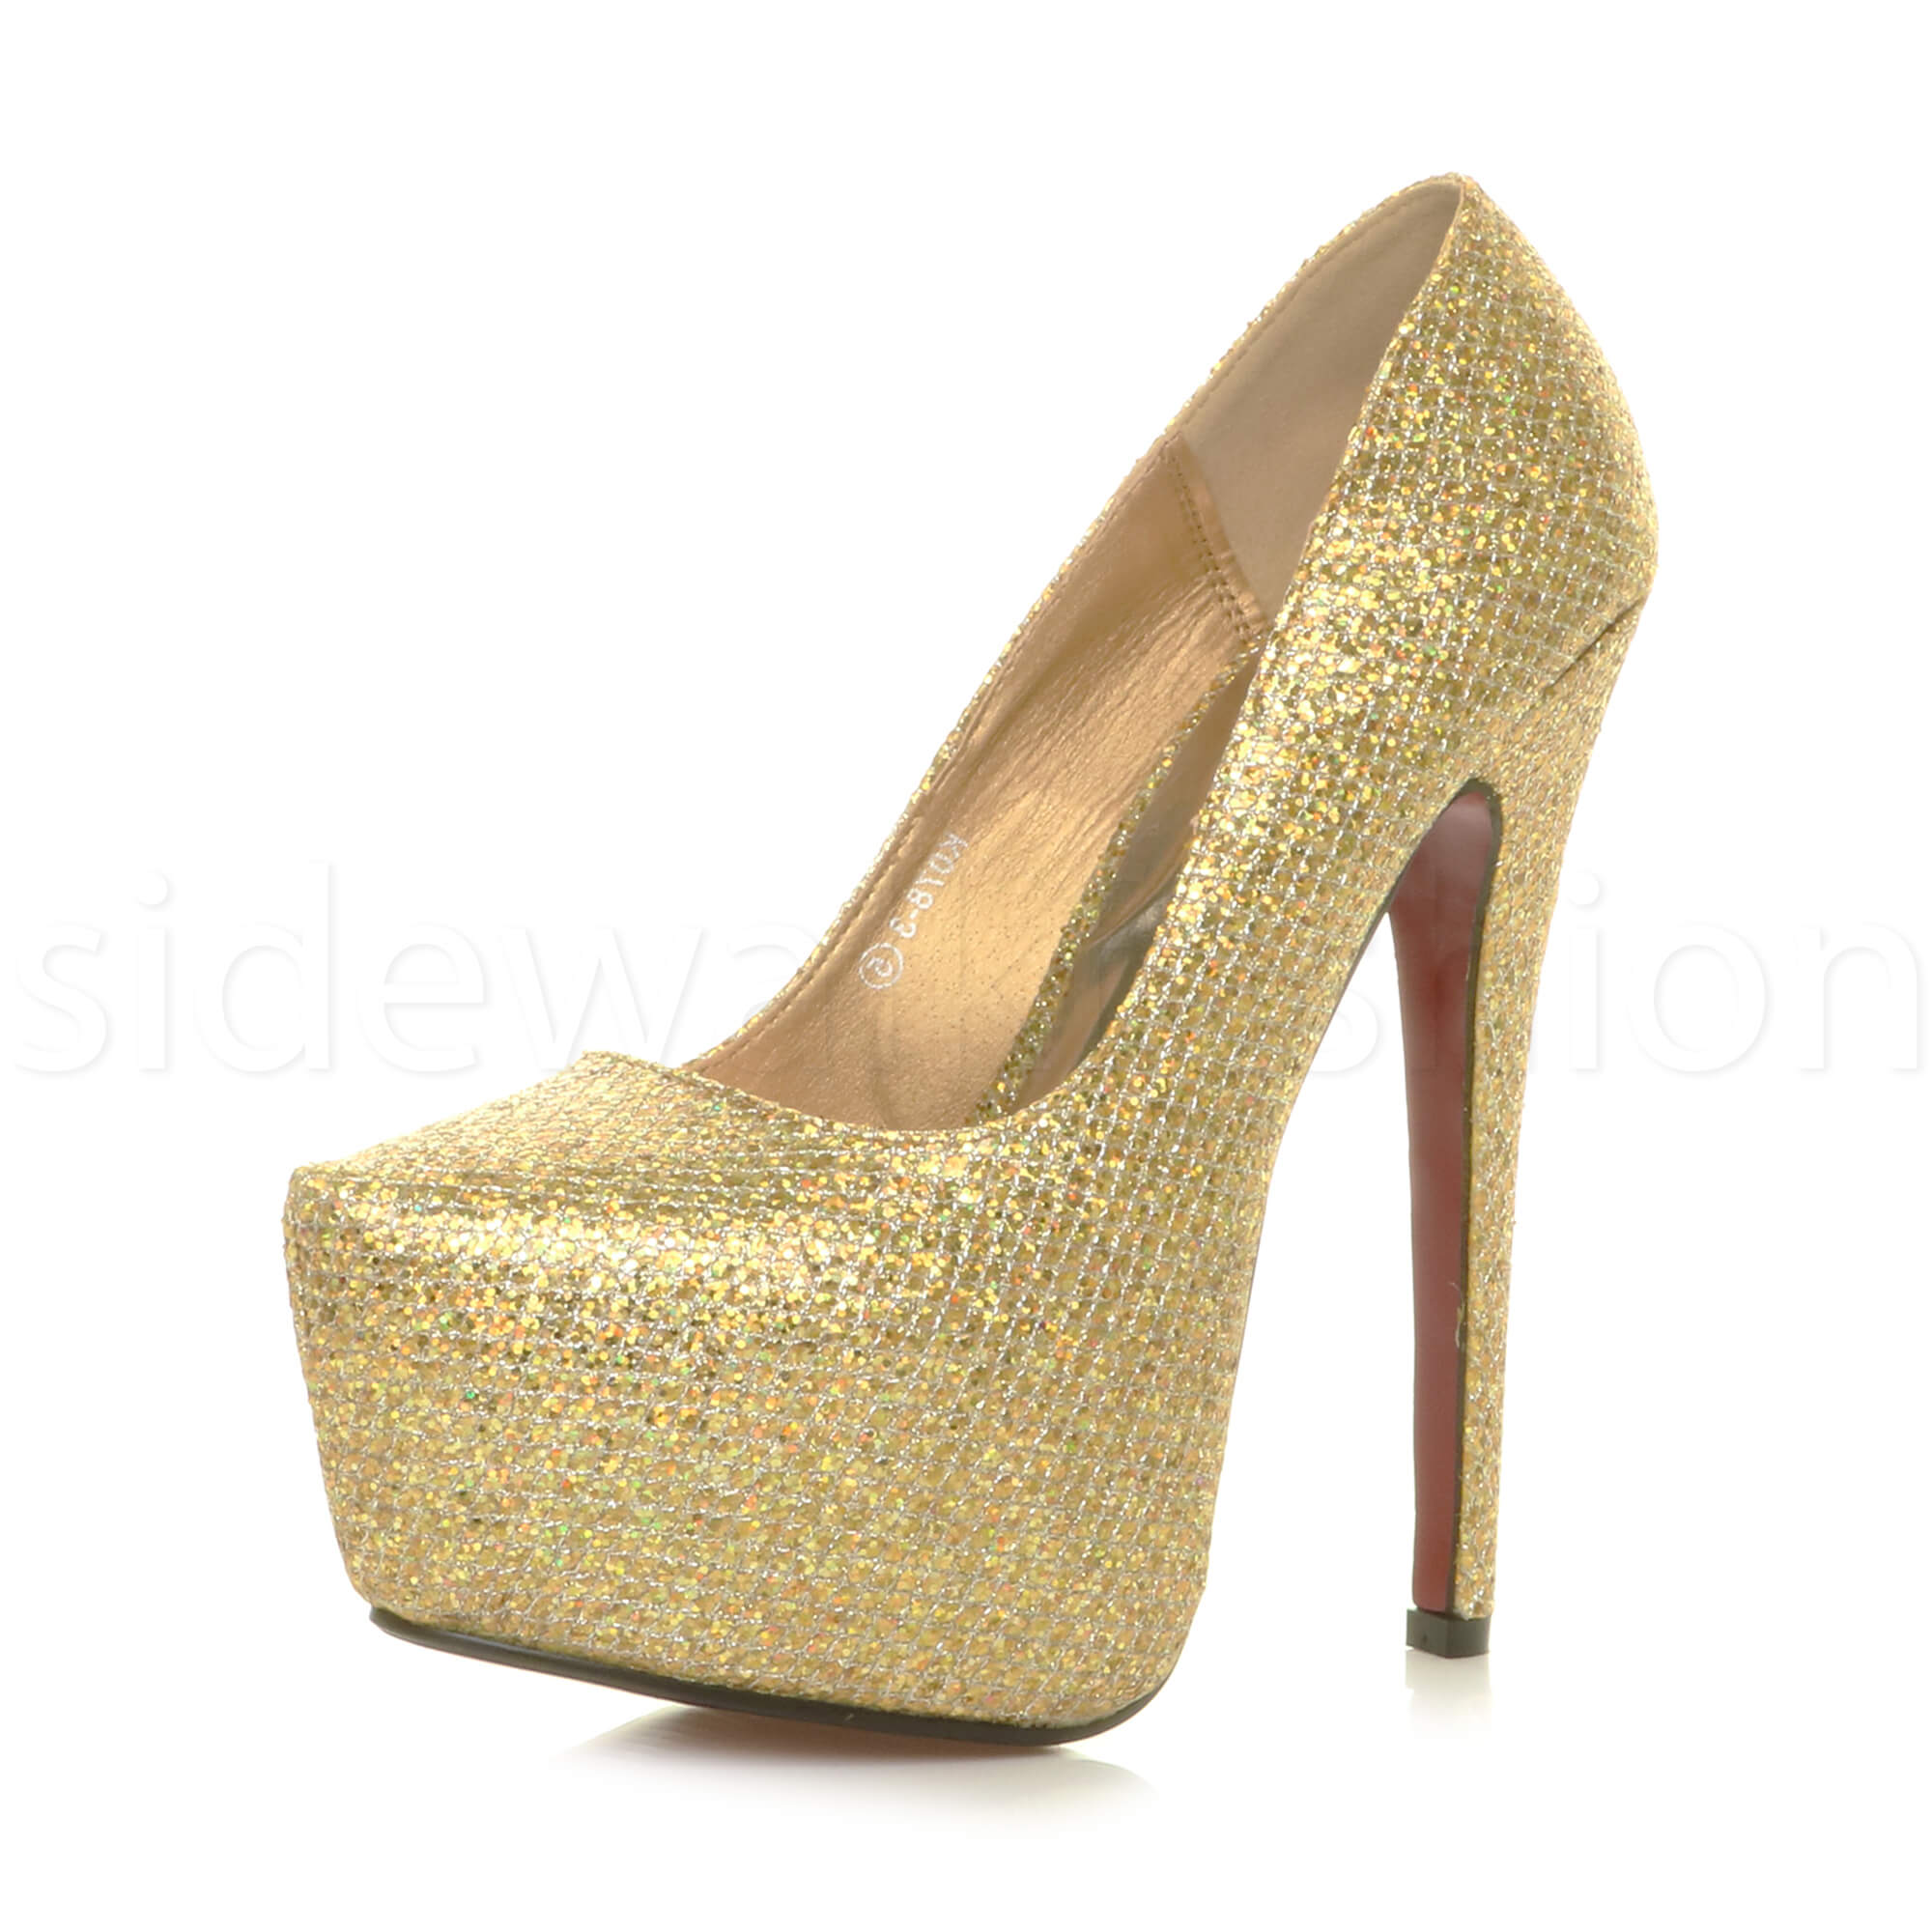 WOMENS-LADIES-HIGH-HEEL-CONCEALED-PLATFORM-POINTED-CLASSIC-COURT-SHOES-PUMP-SIZE